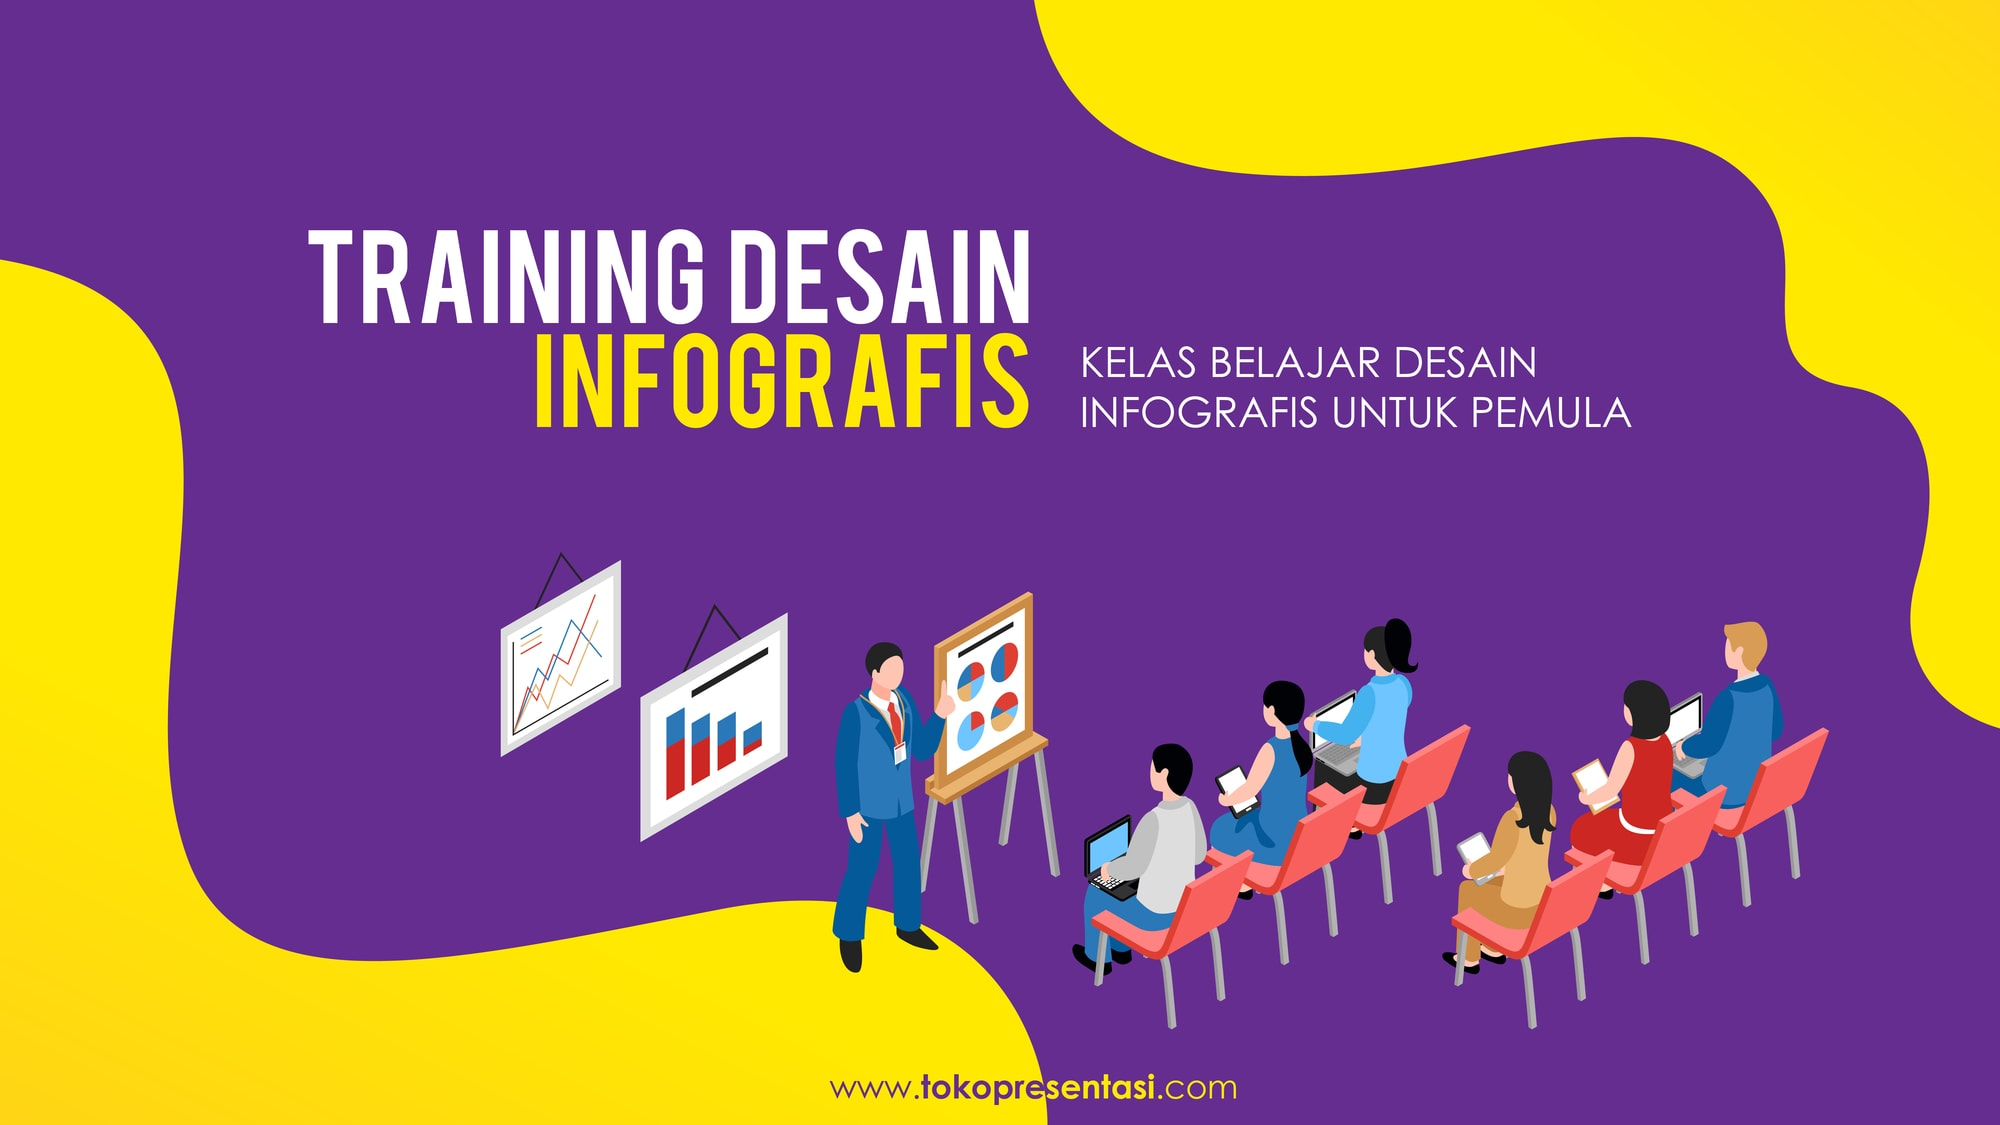 Pelatihan Training Desain Infografis PPT Corporate University Holcim Indonesia Tokopresentasi